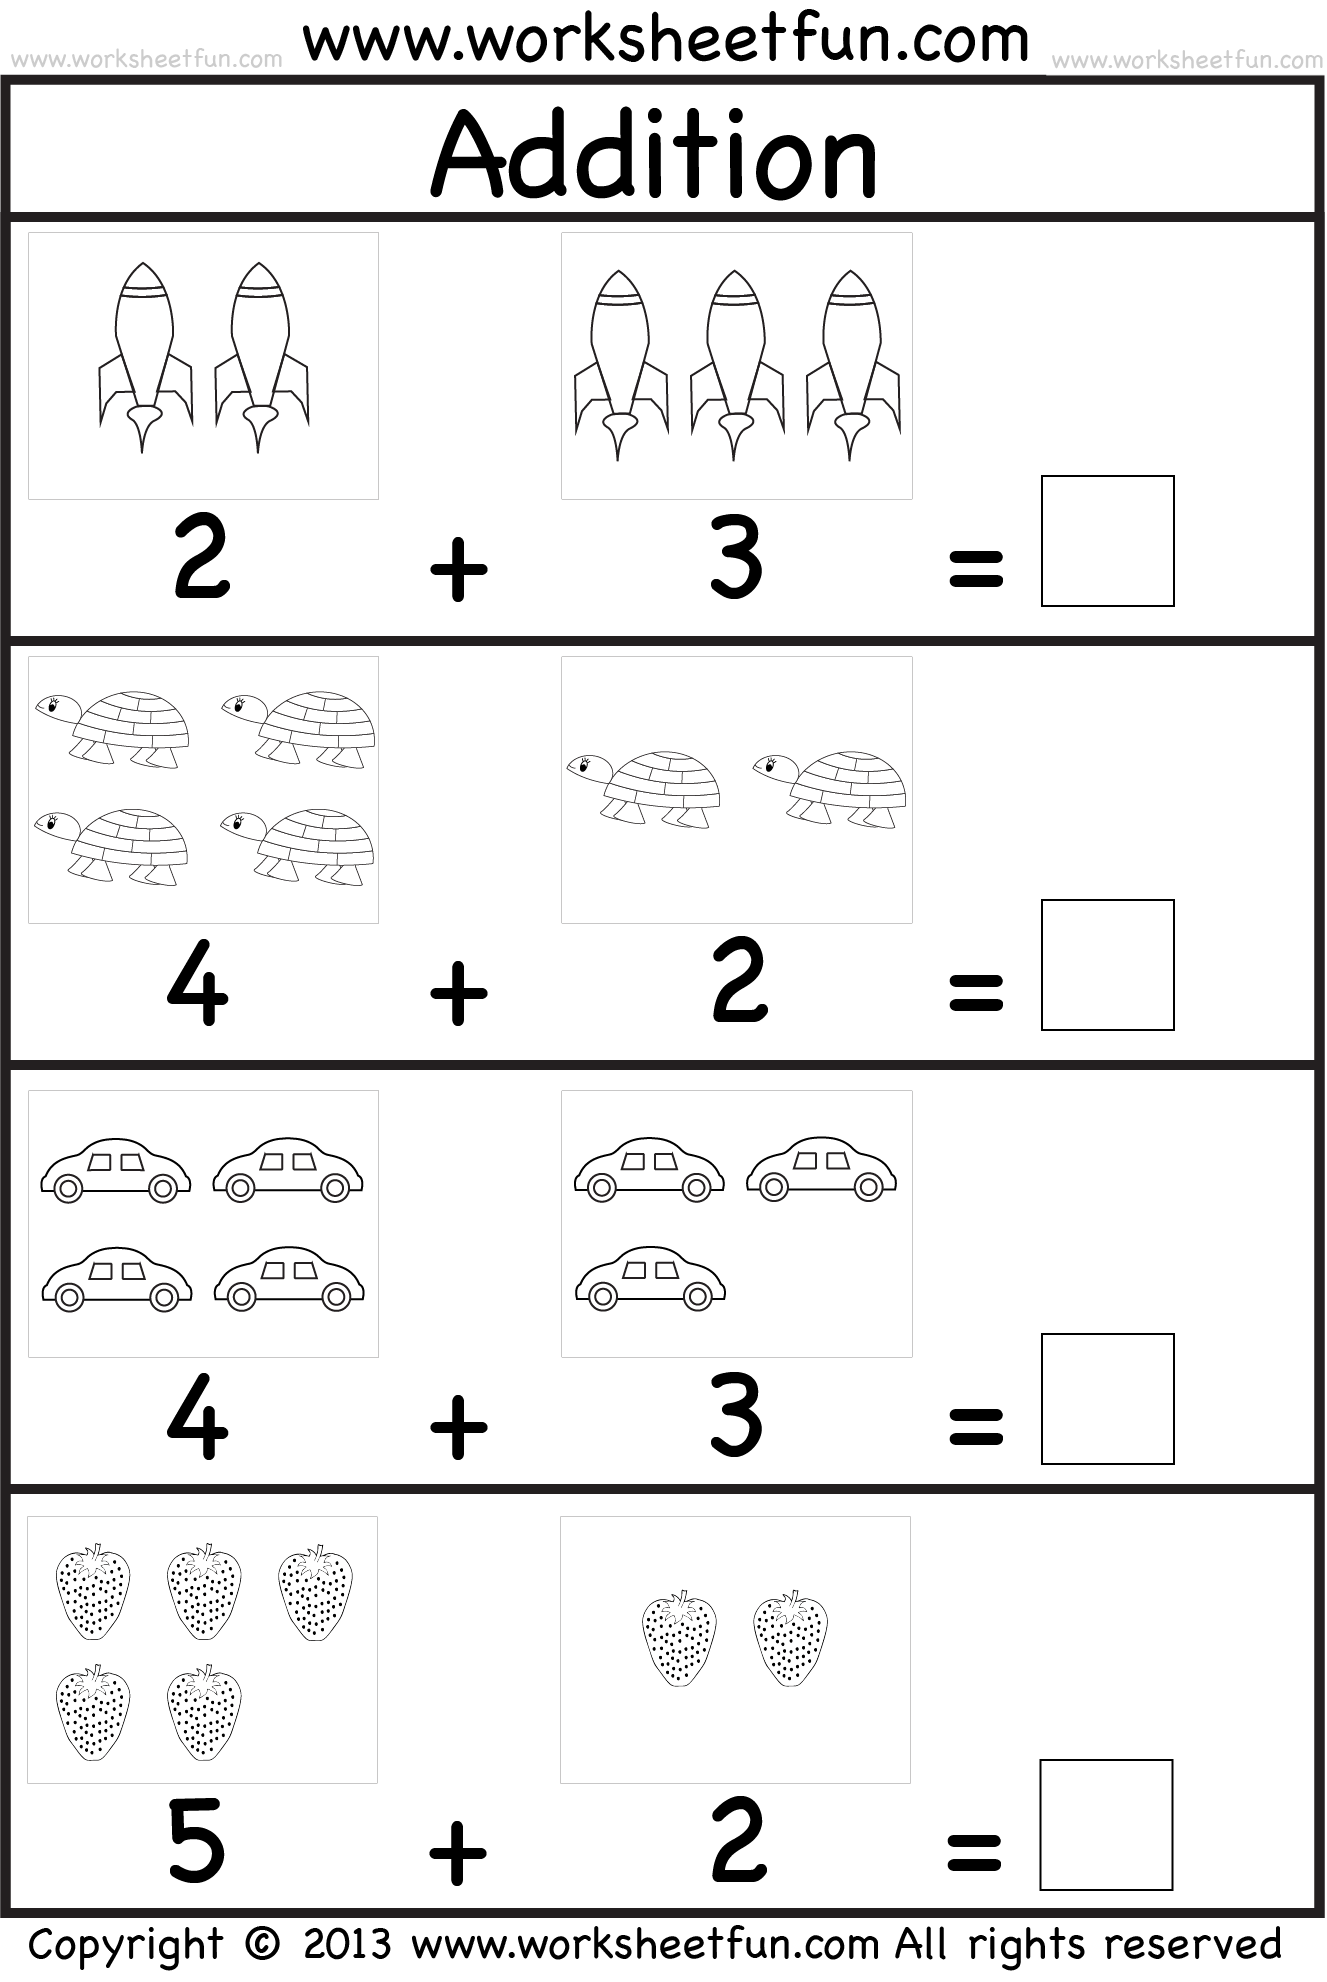 Addition Worksheet This Site Has Great Free Worksheets For Everything From Abc S To Math